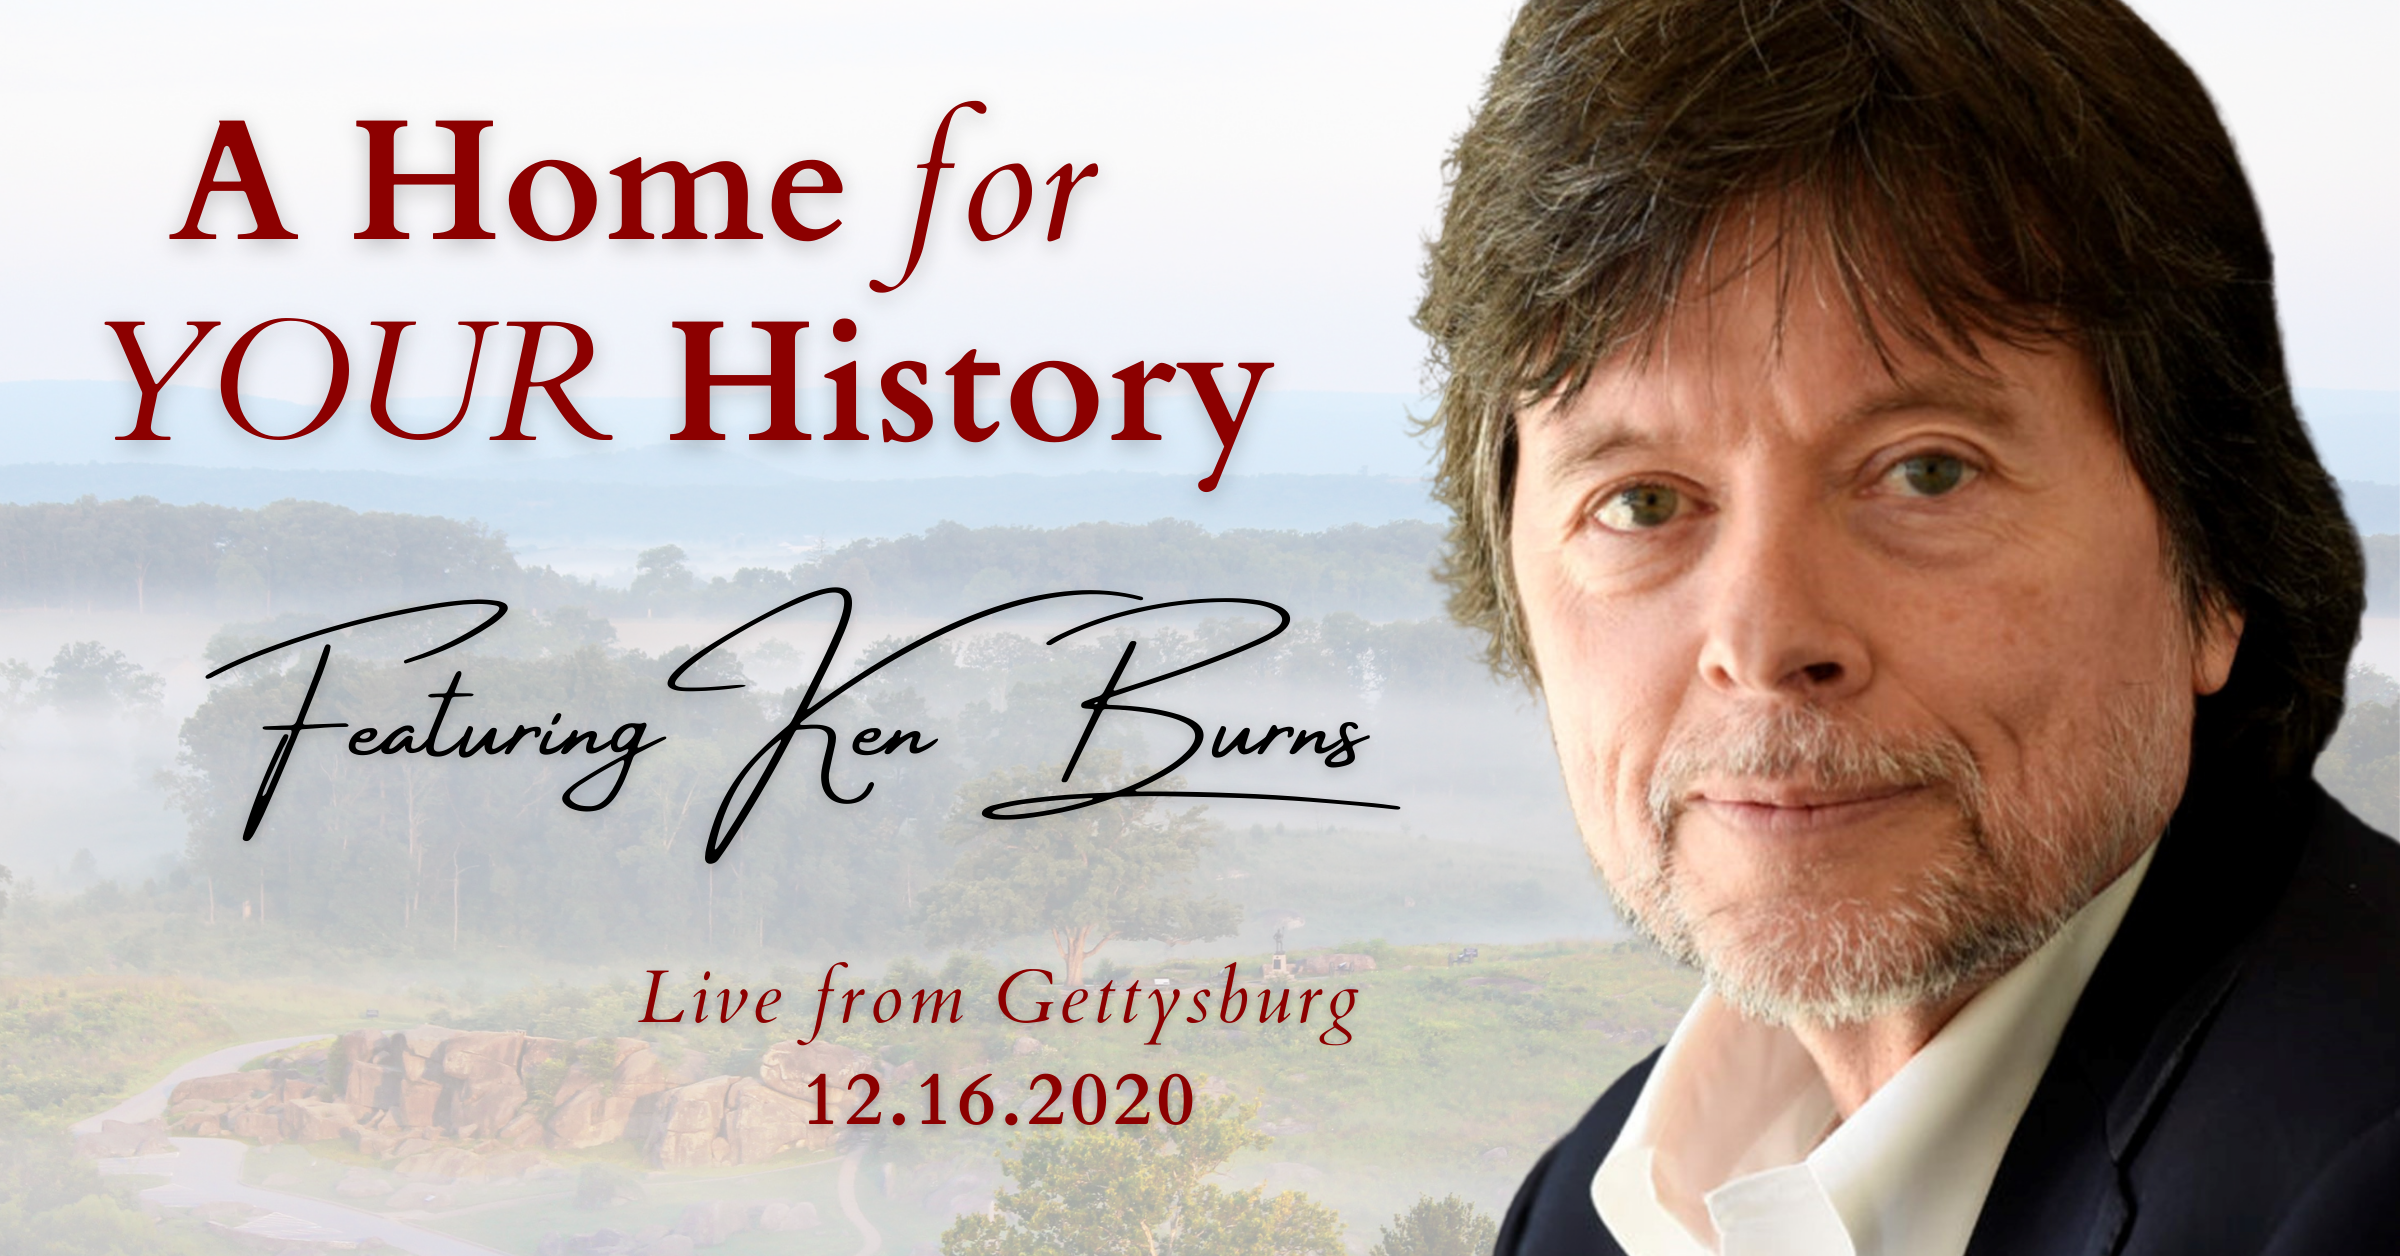 An Exclusive Announcement from Gettysburg